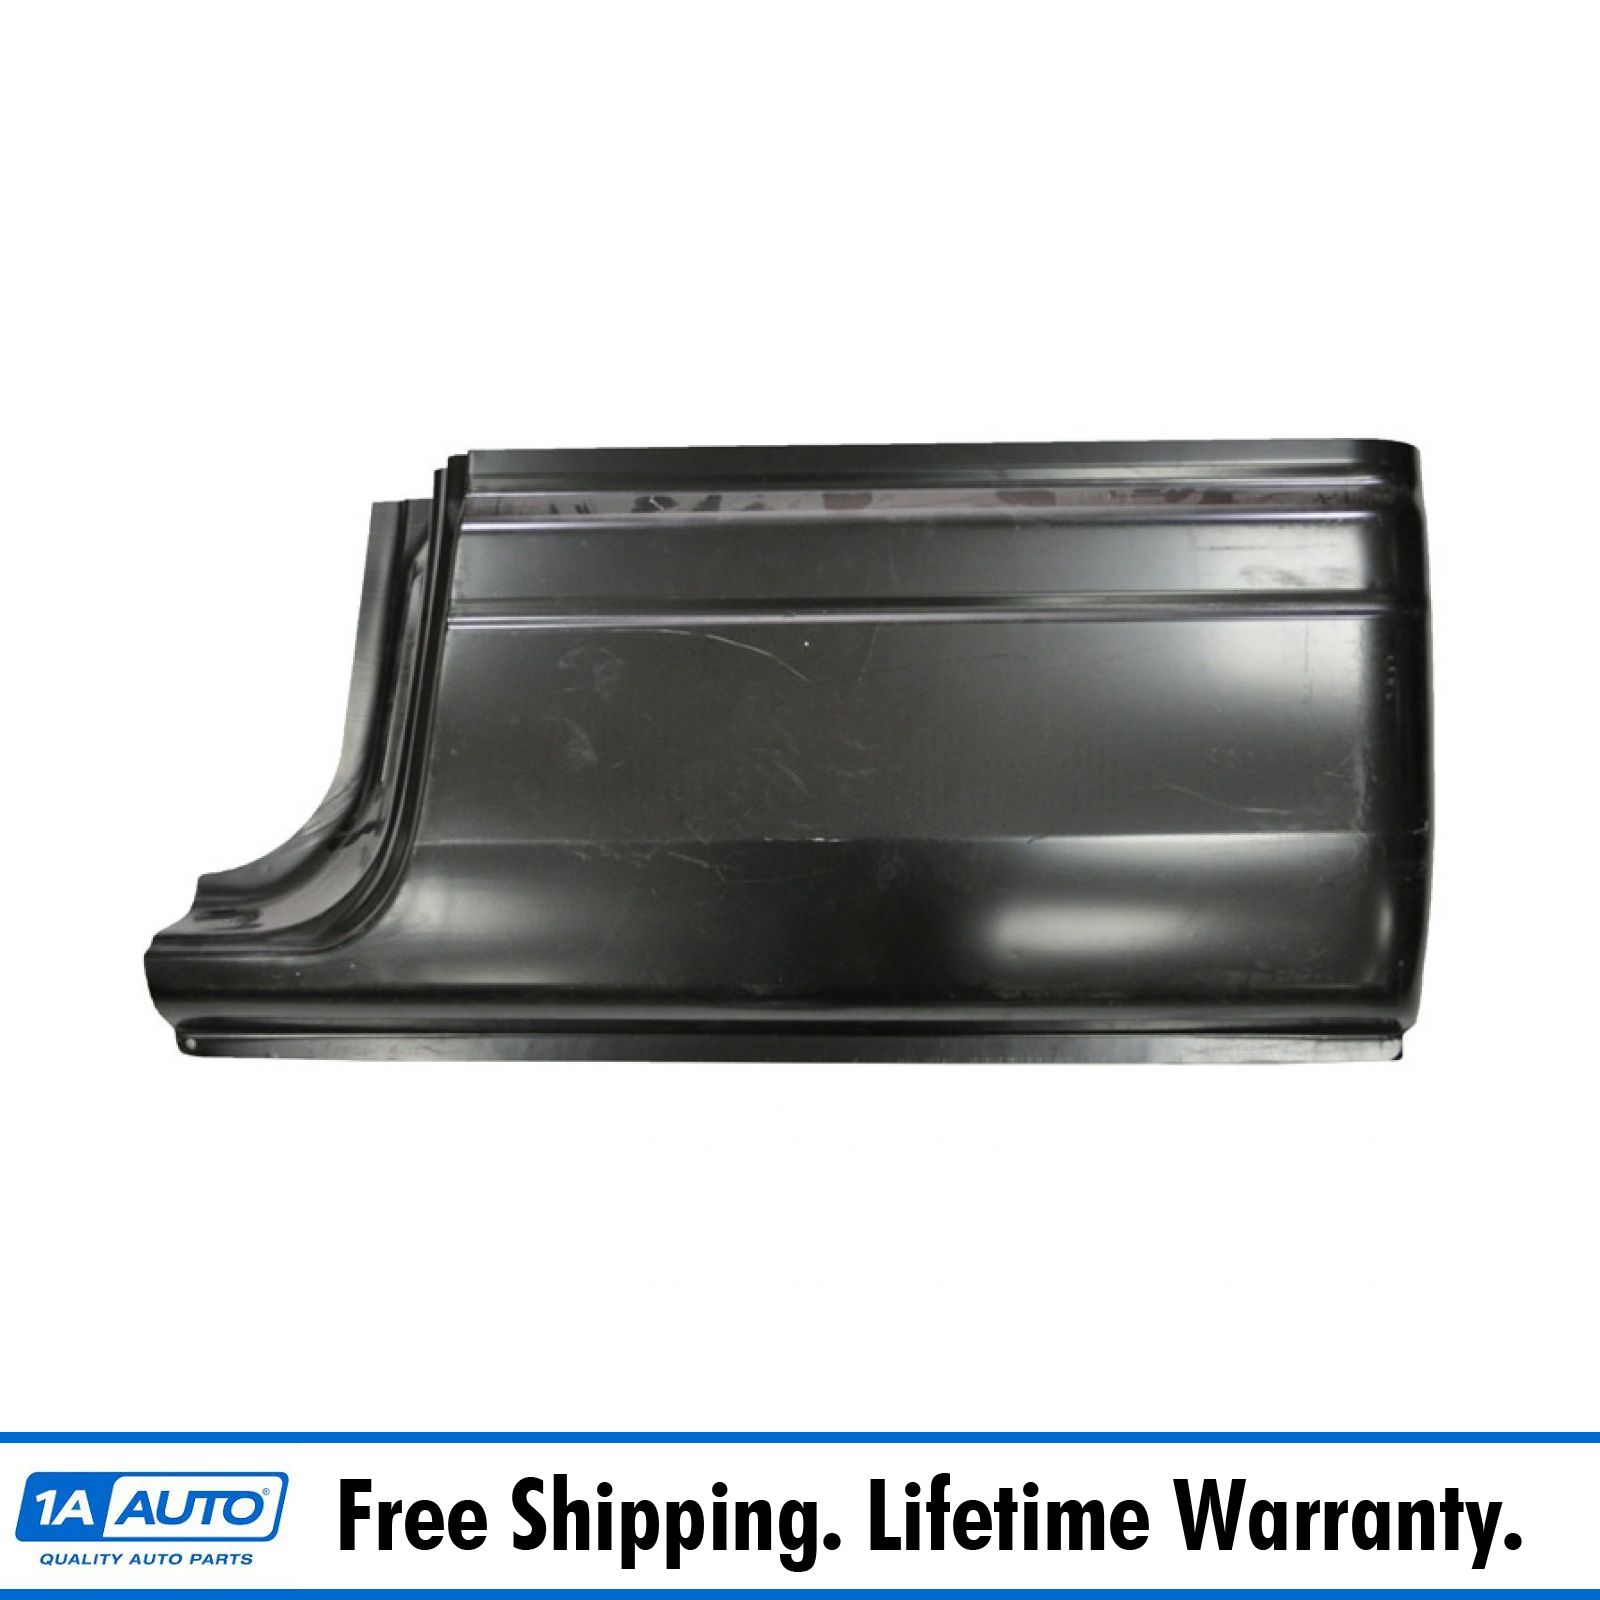 1A Auto Rust Repair Panel Extended Cab Corner Rear Pair Set for Dodge Ram 1500 2500 3500